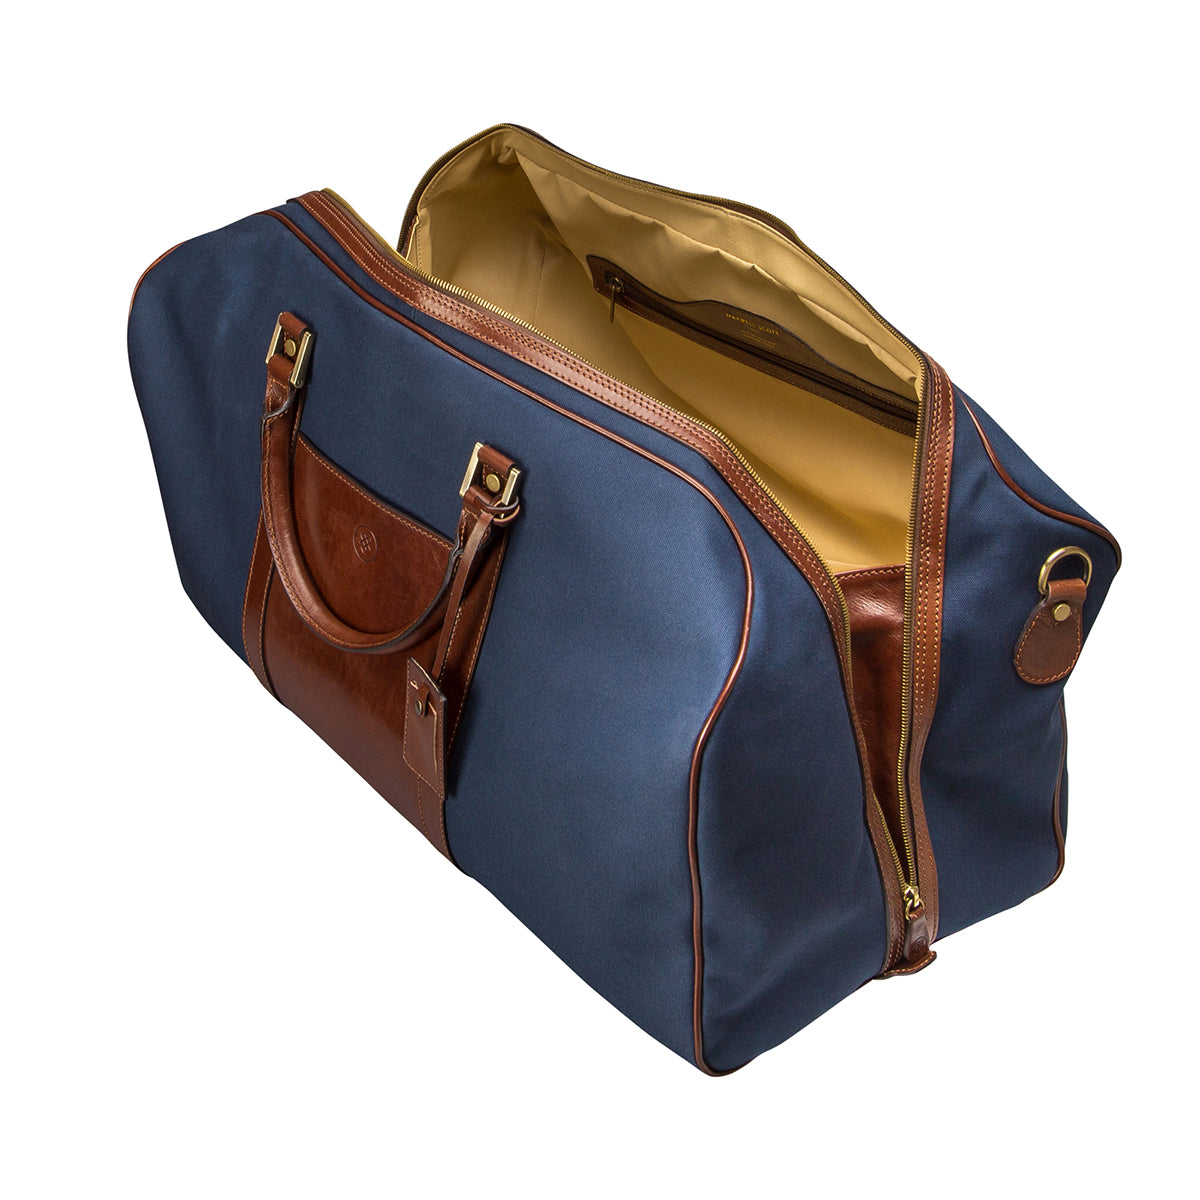 Image 5 of the Large 'Giovane' Rich Navy and Tan Holdall